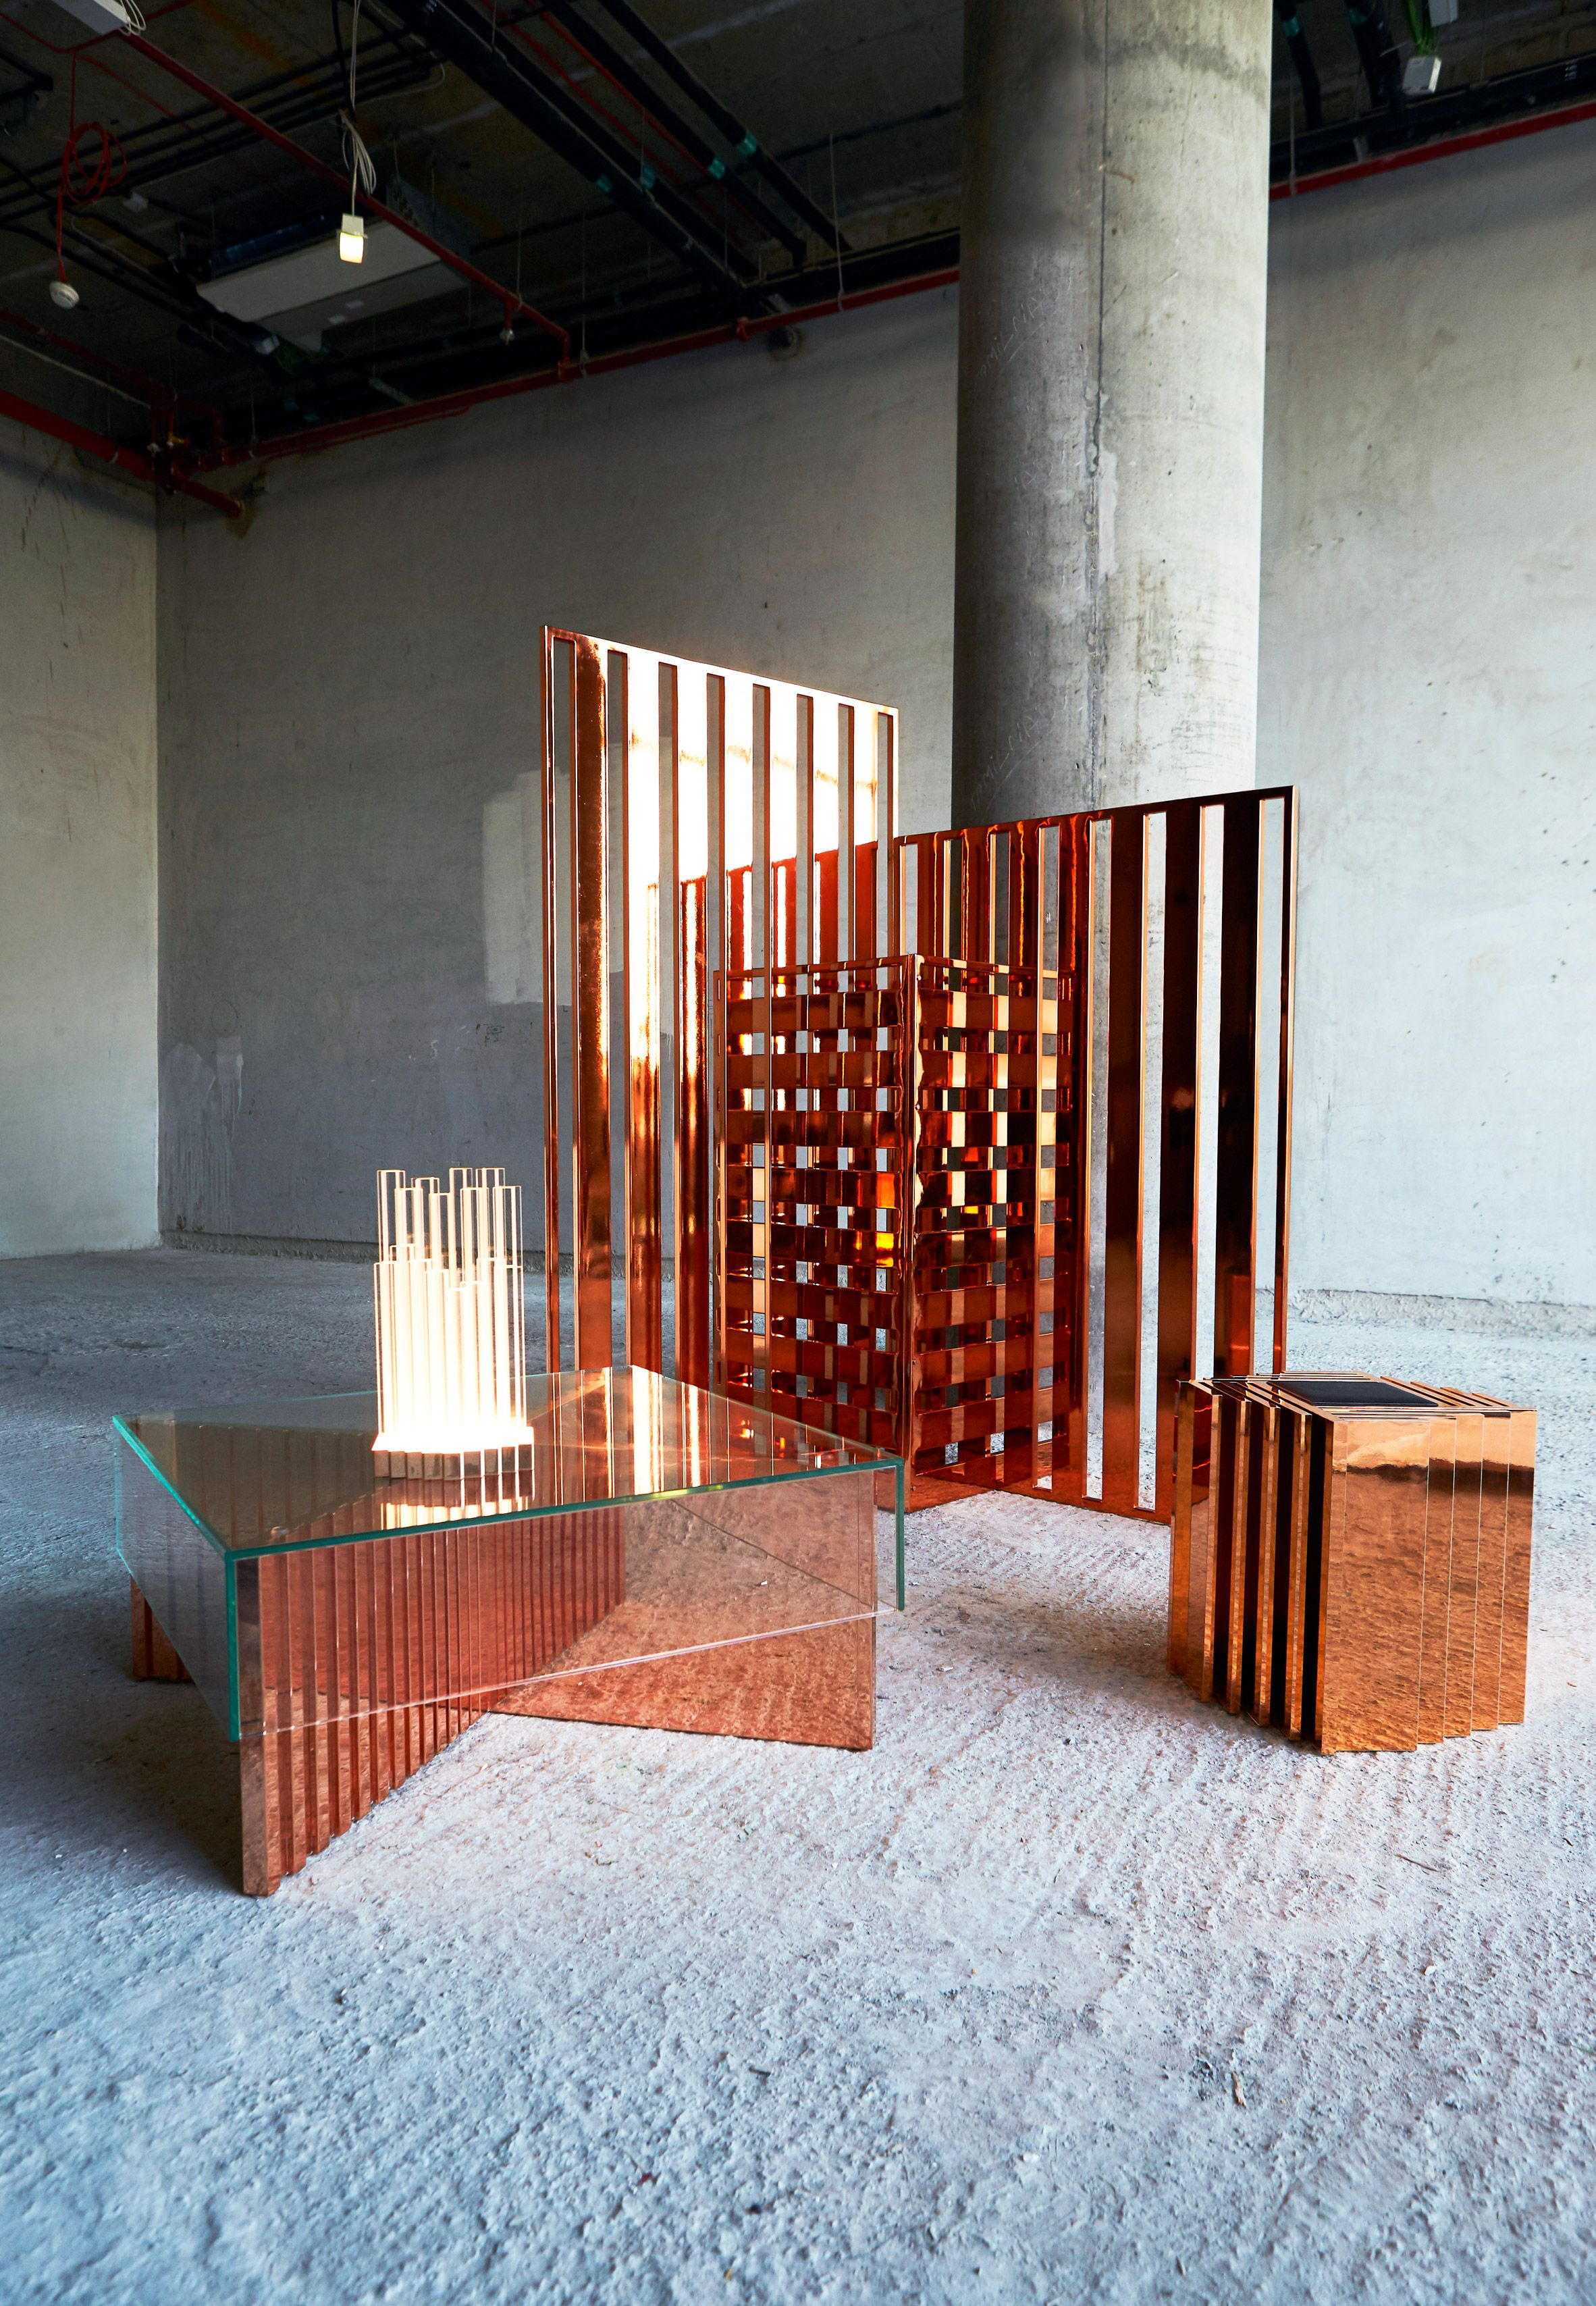 Meubles Fraser Furniture Aljoub Lootah S Furniture Collection Takes Cues From Traditional